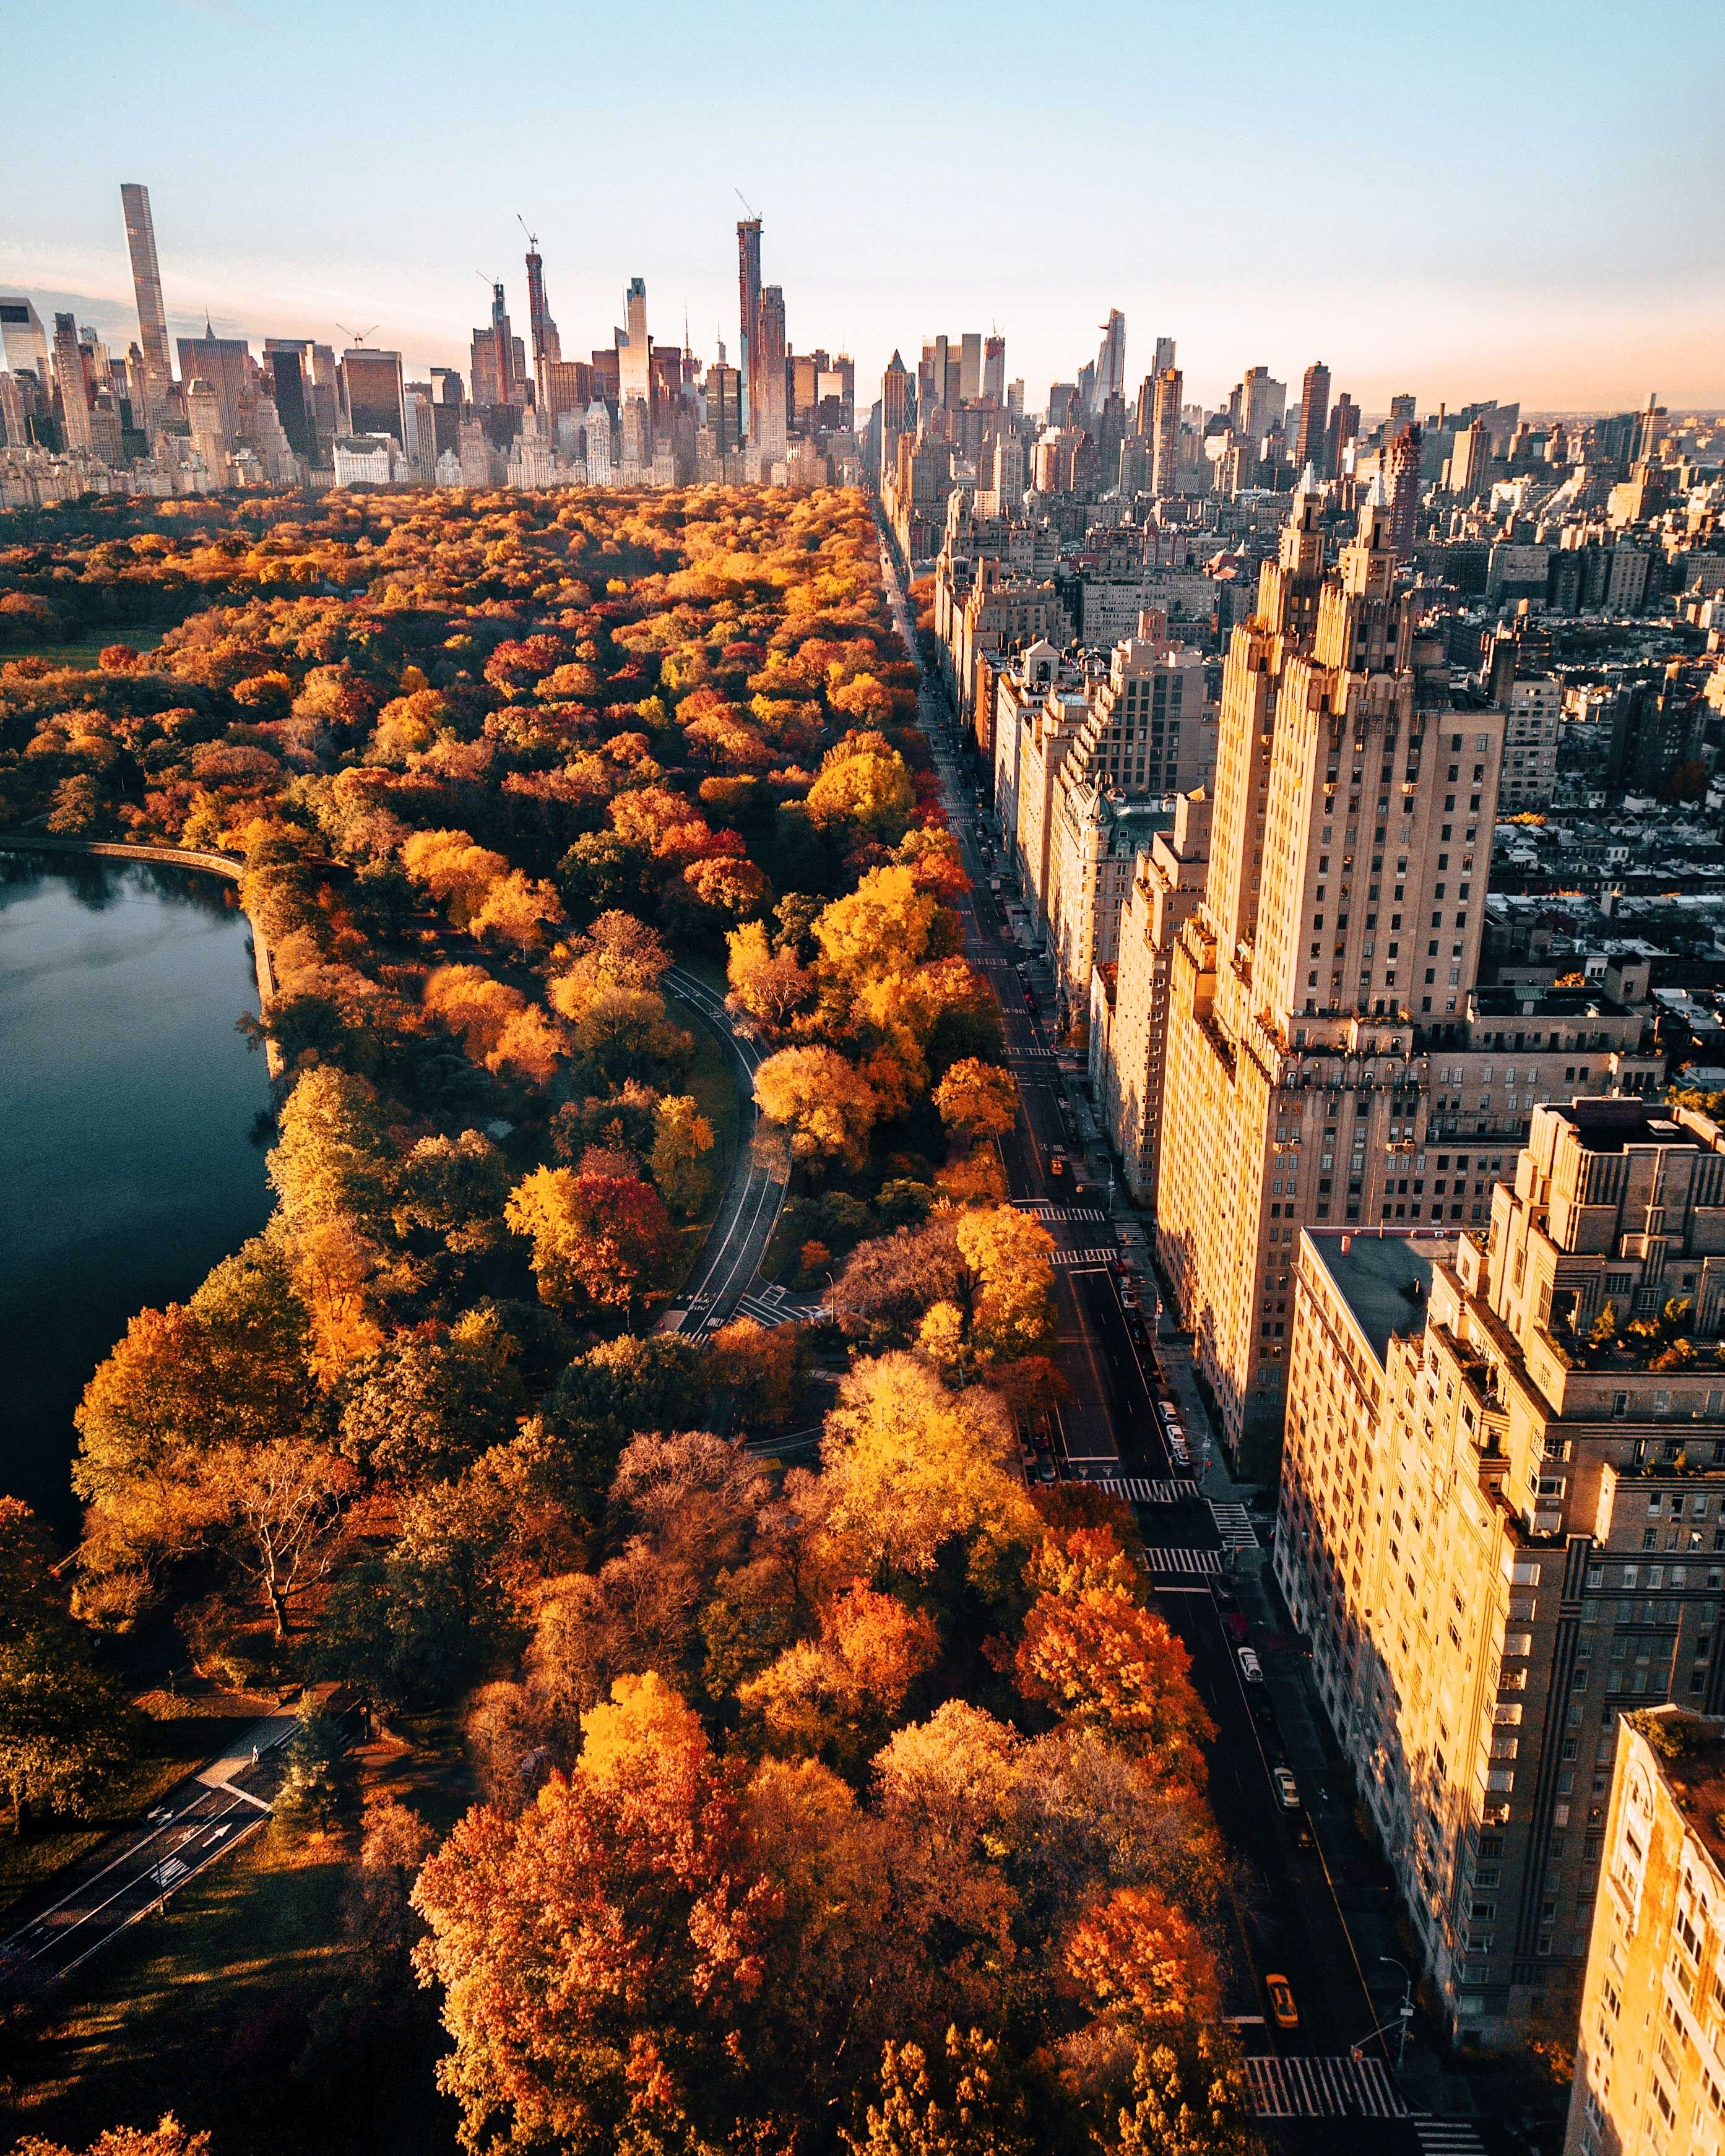 Whether you're enjoying the skyline from a rooftop lounge or the fall colours at ground level, the #BigApple 🗽 is pretty easy on the eyes in the fall. 🍂  A local #NewYork guide can show you all the secret spots most larger tours miss.